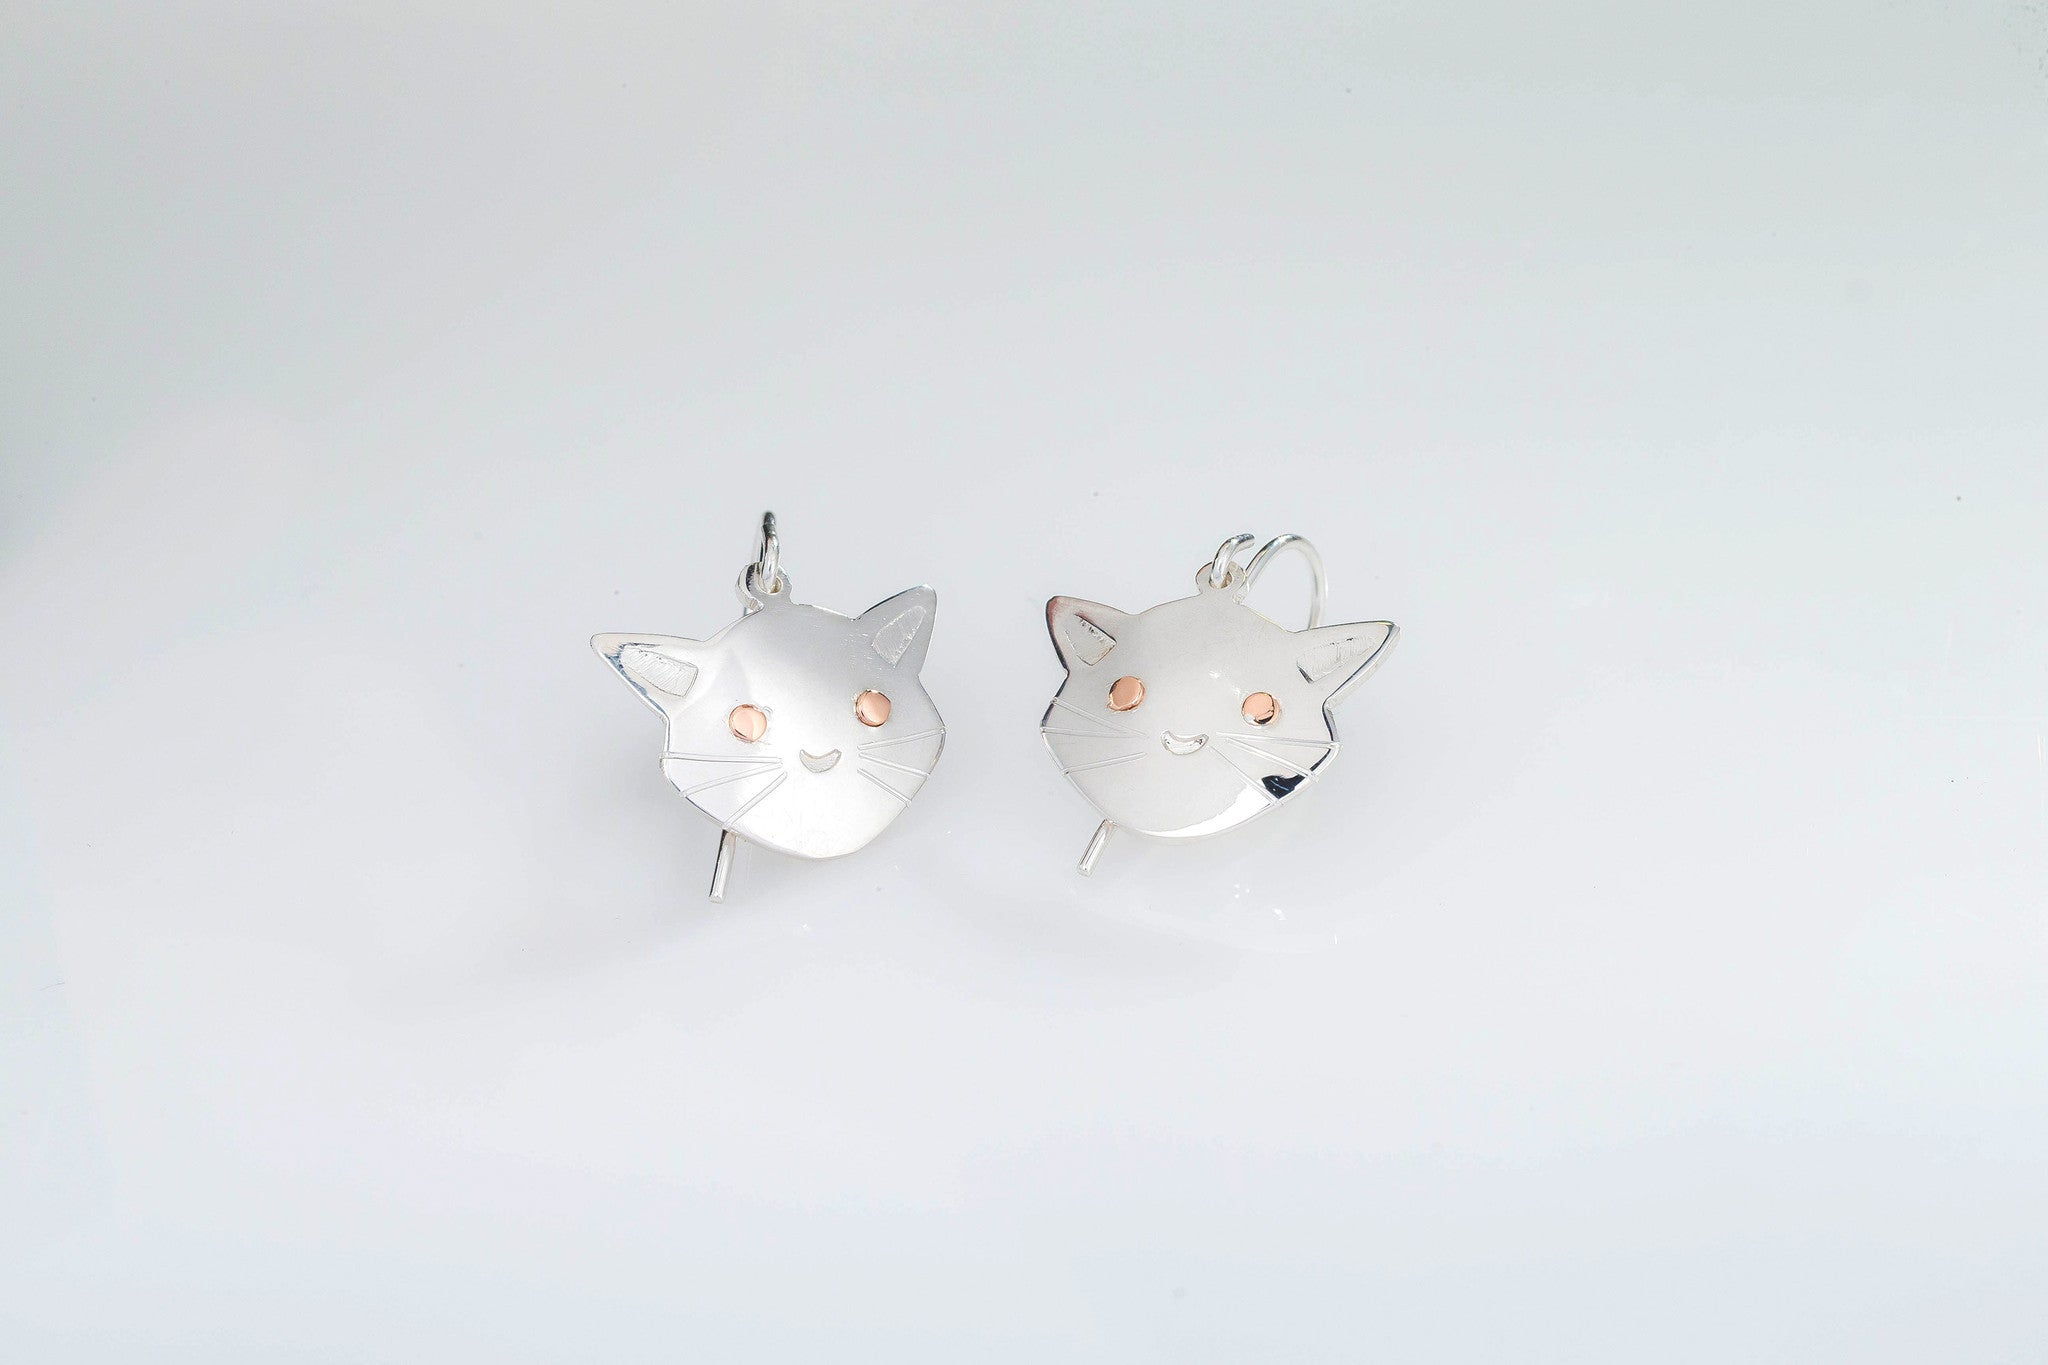 Cat Earrings Handmade In Ireland From Sterling Silver And Gold